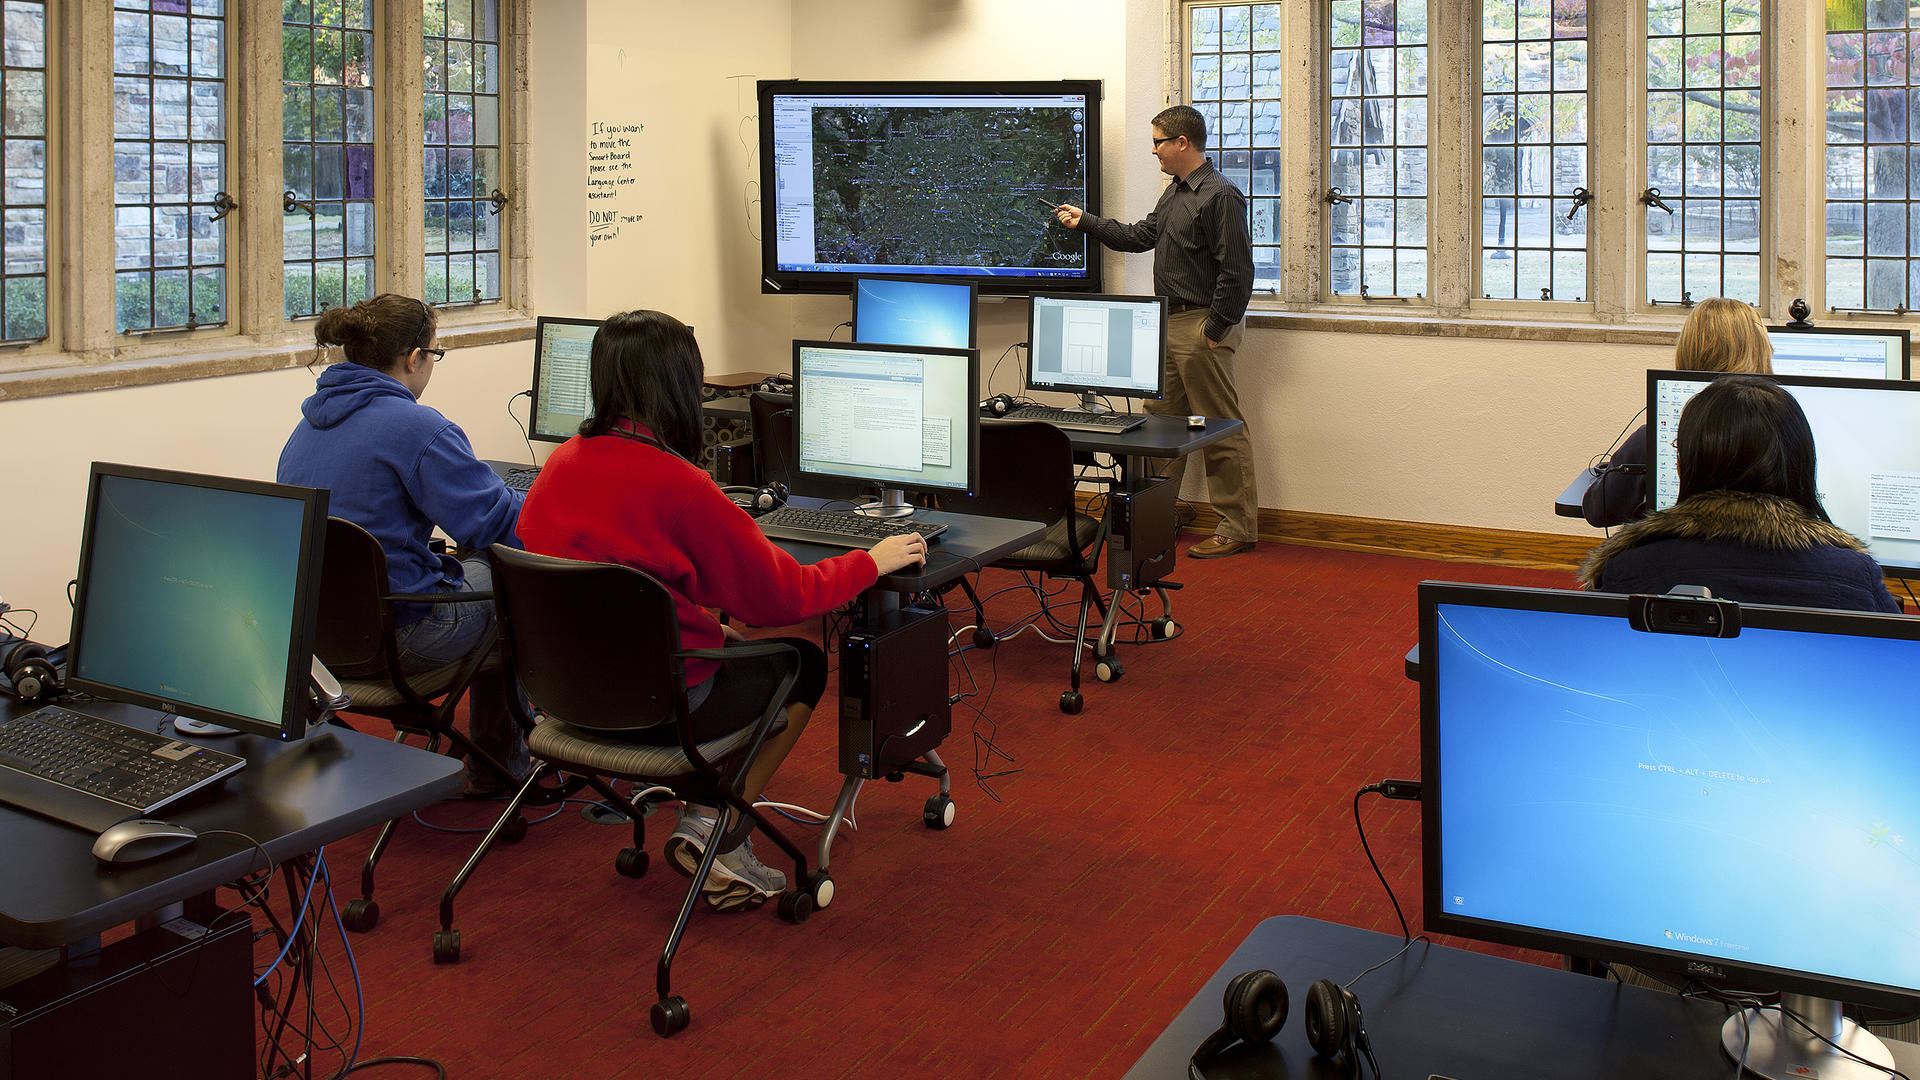 A professor points at a projected map while students sit in from of computers in the language lab